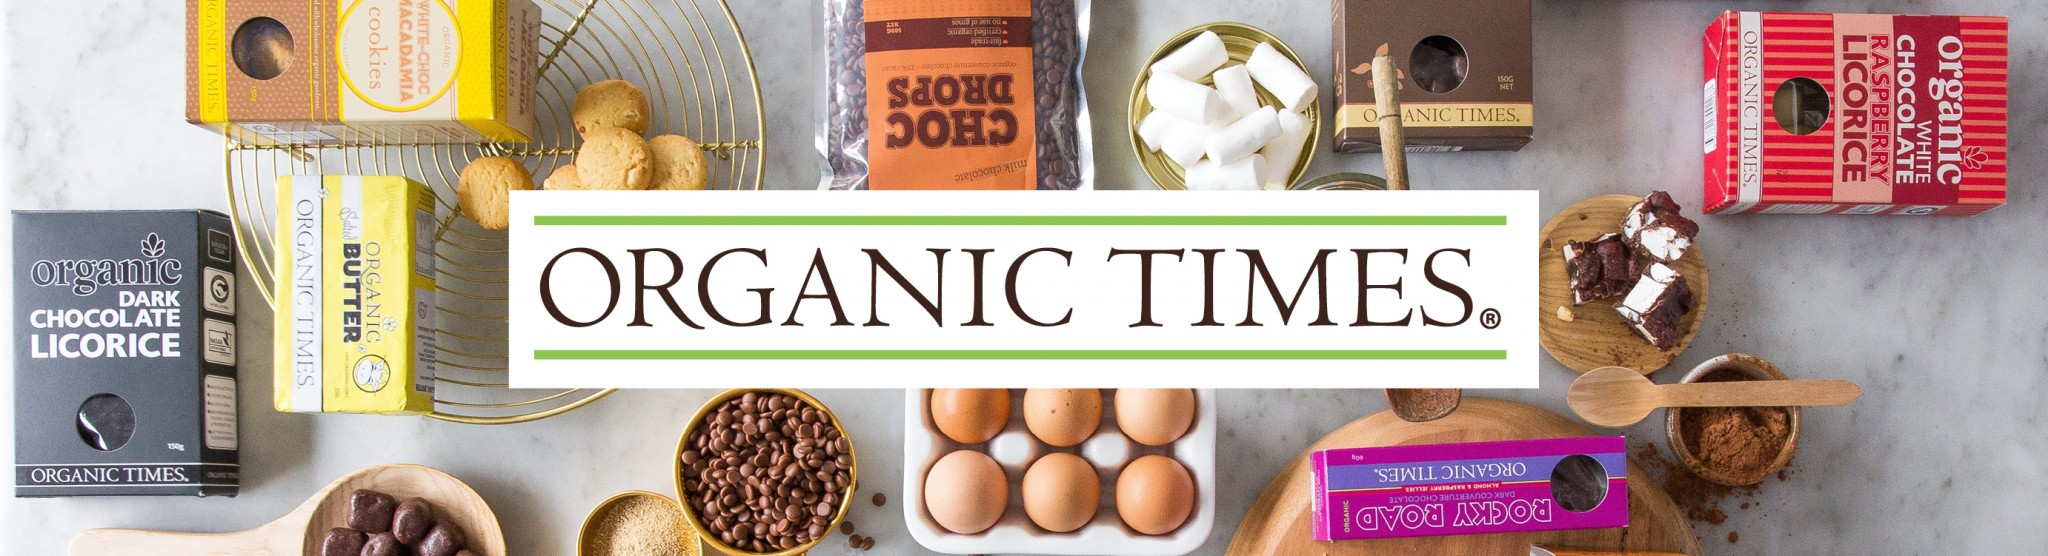 OrganicTimes_WellBeing_Directory_Listing